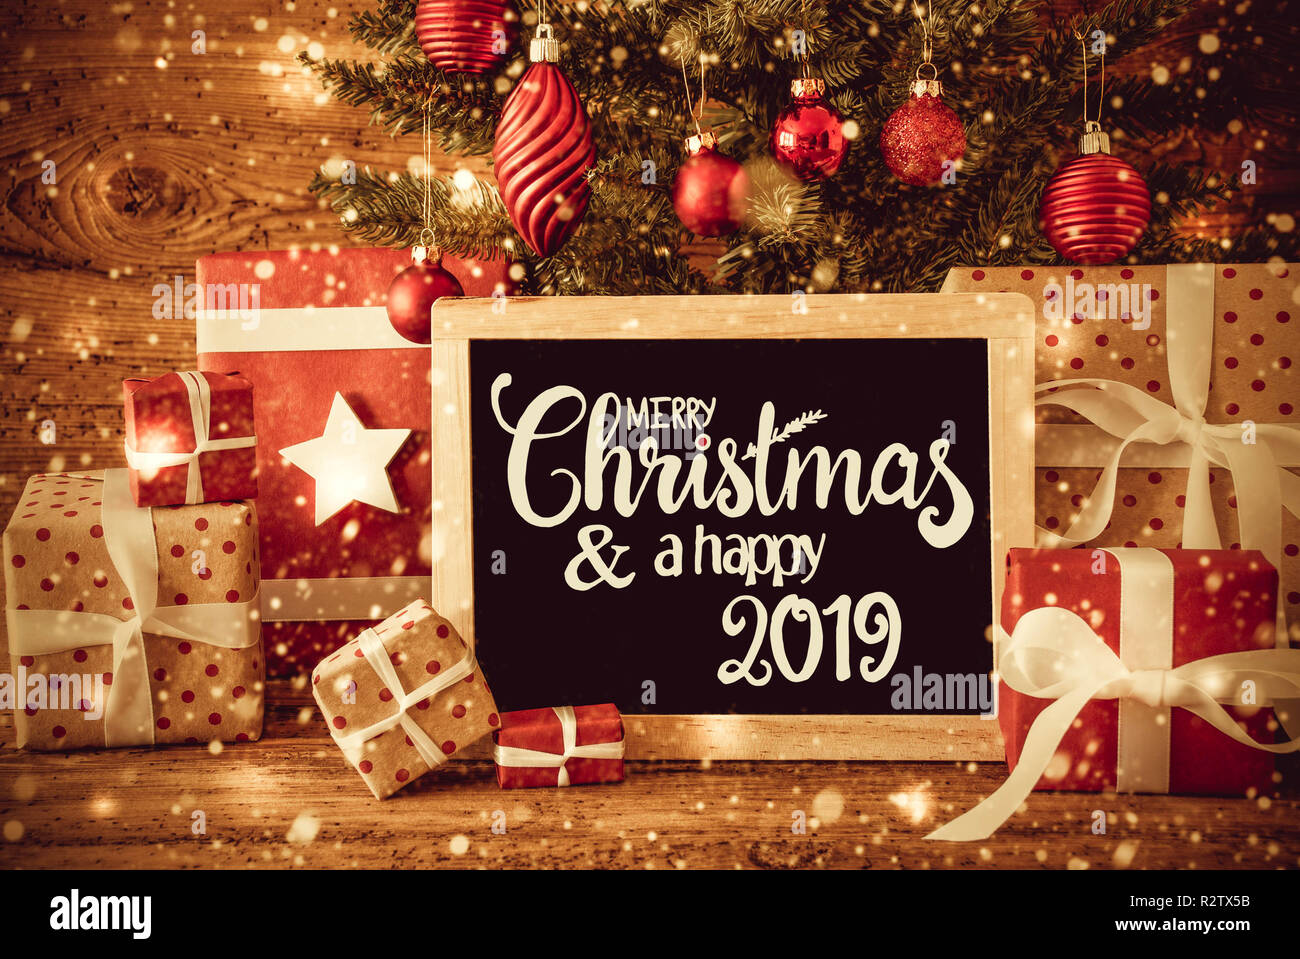 Merry Christmas 2019 Images.Bright Tree Gifts Calligraphy Merry Christmas And A Happy